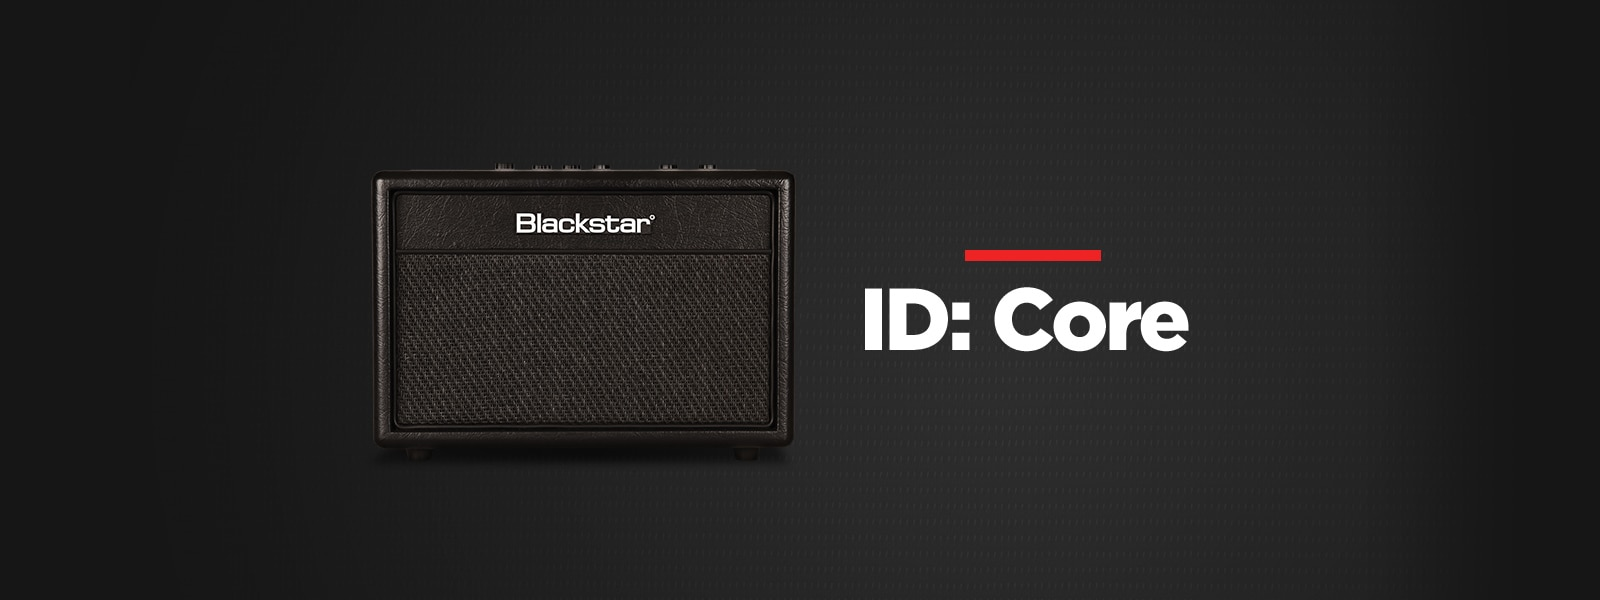 Blackstar ID: Core Amplifiers